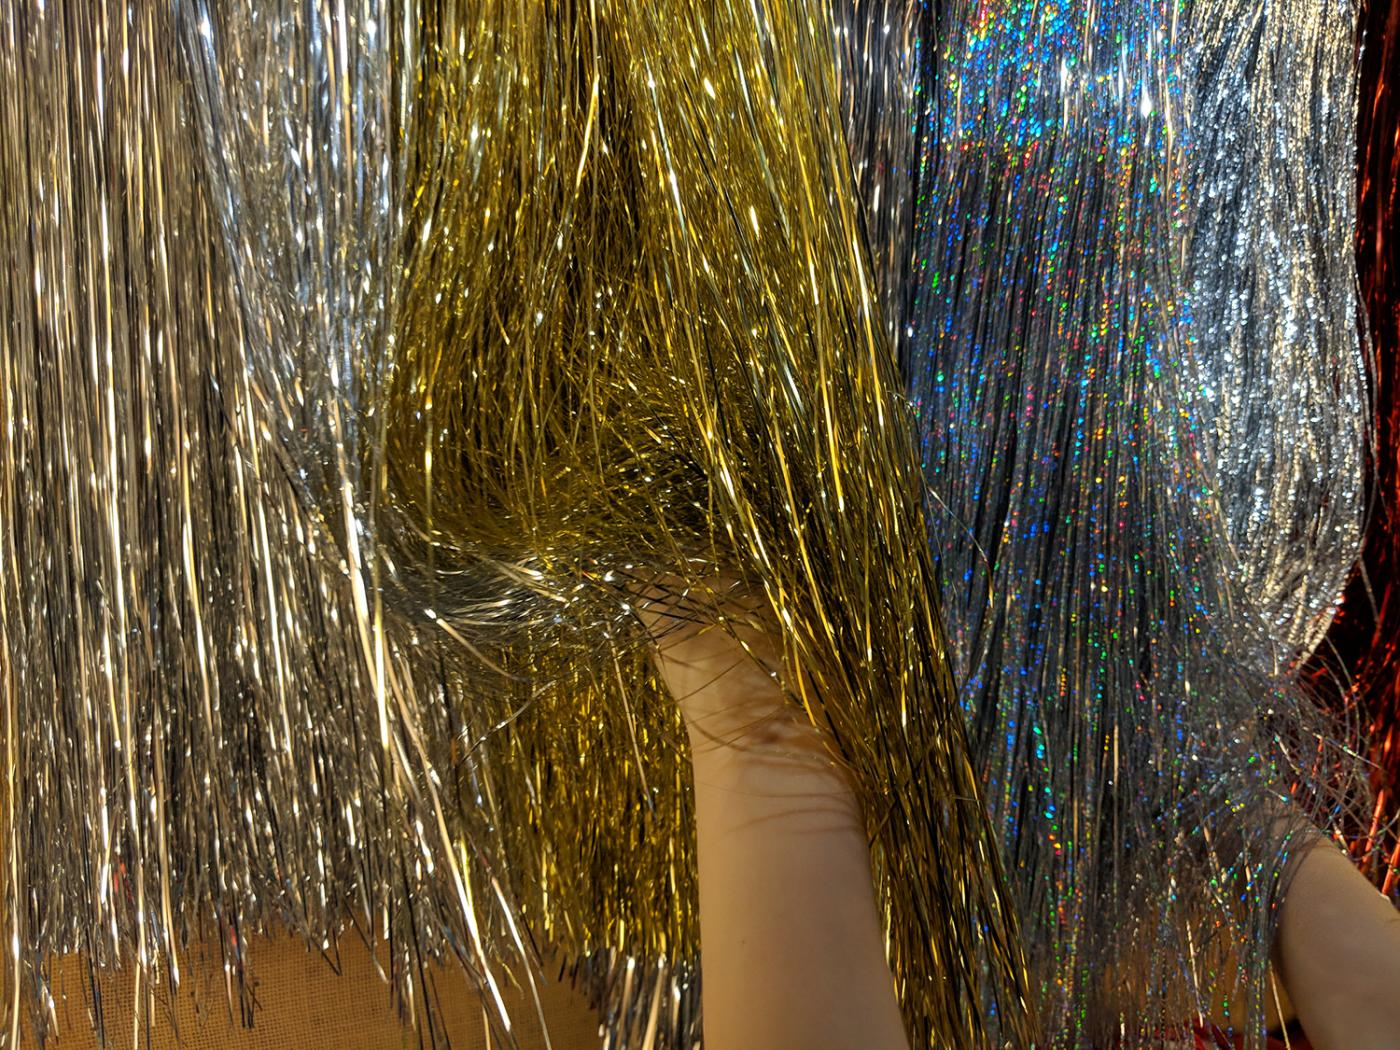 Hands rustle through gold and silver tinsel hanging on wall.